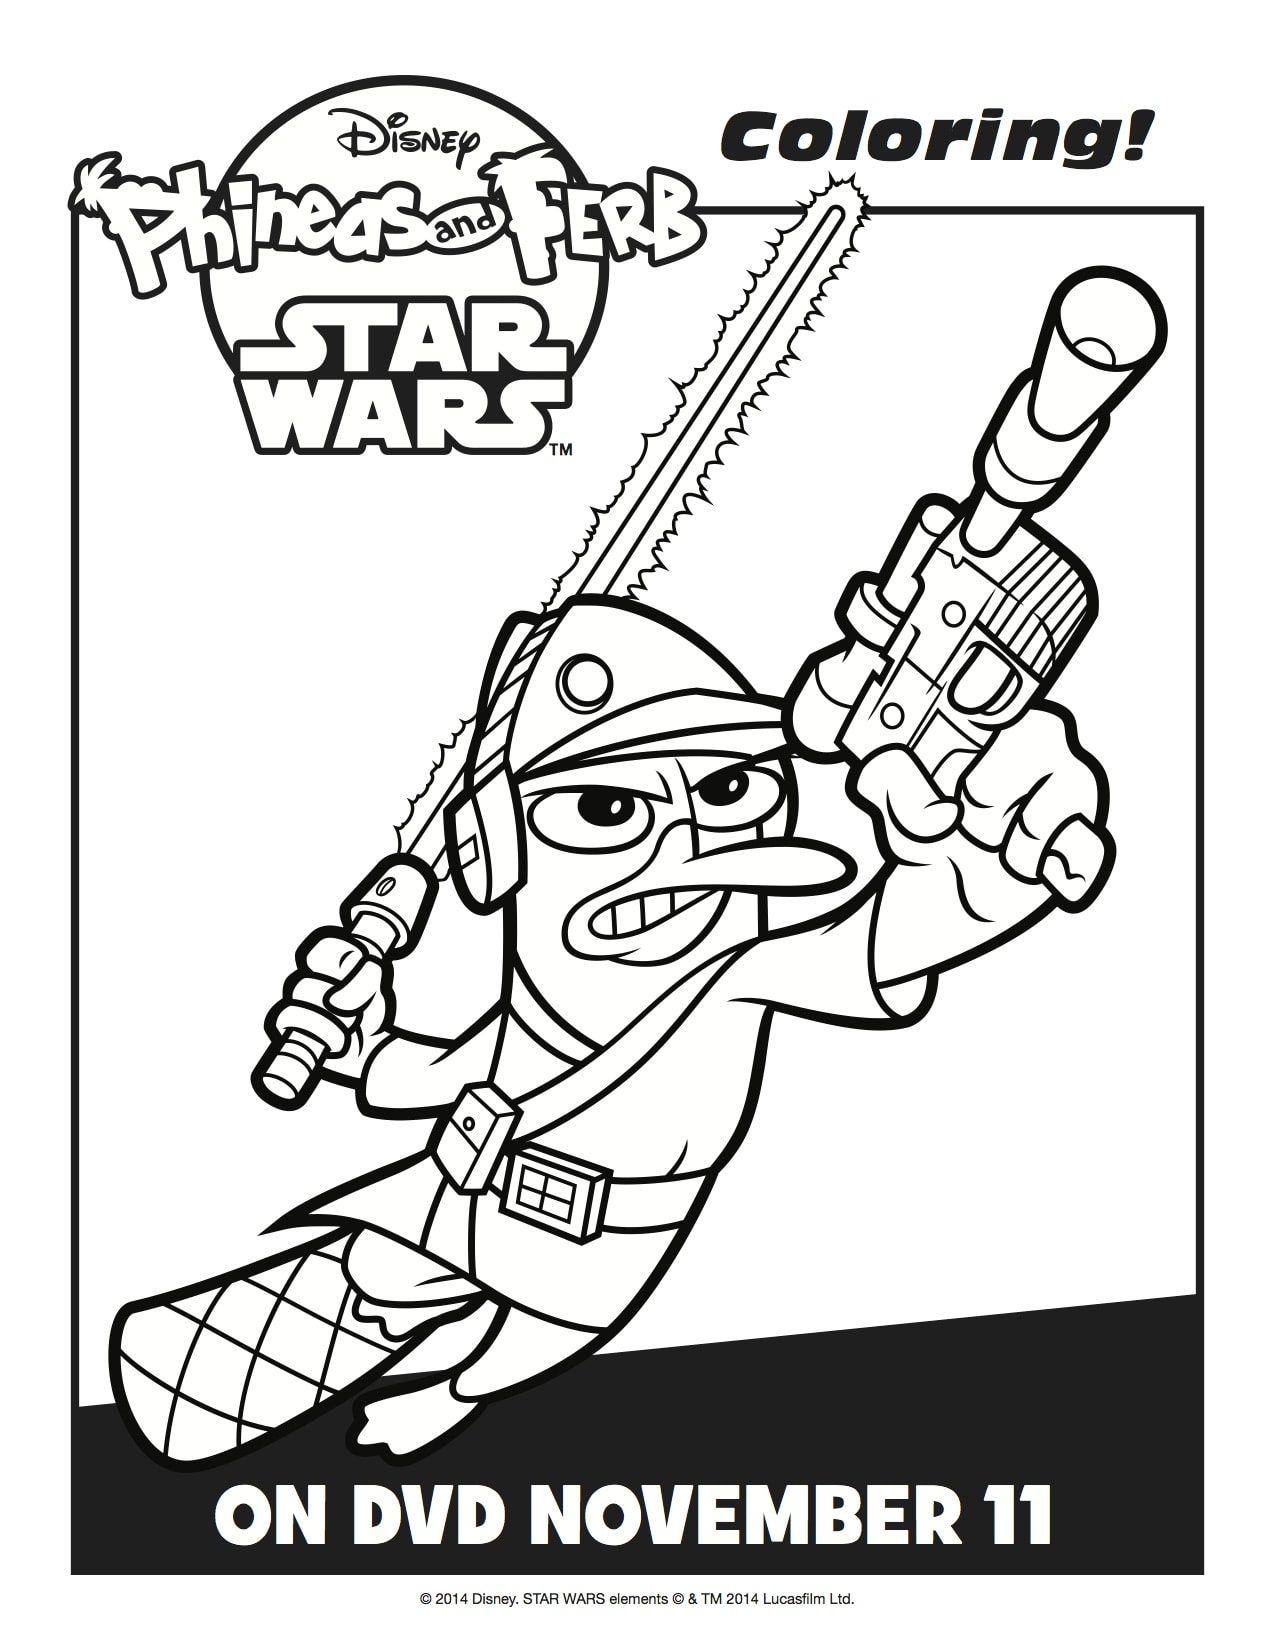 """Phineas And Ferb: Star Wars"" FREE Activity Sheets - Lady ..."